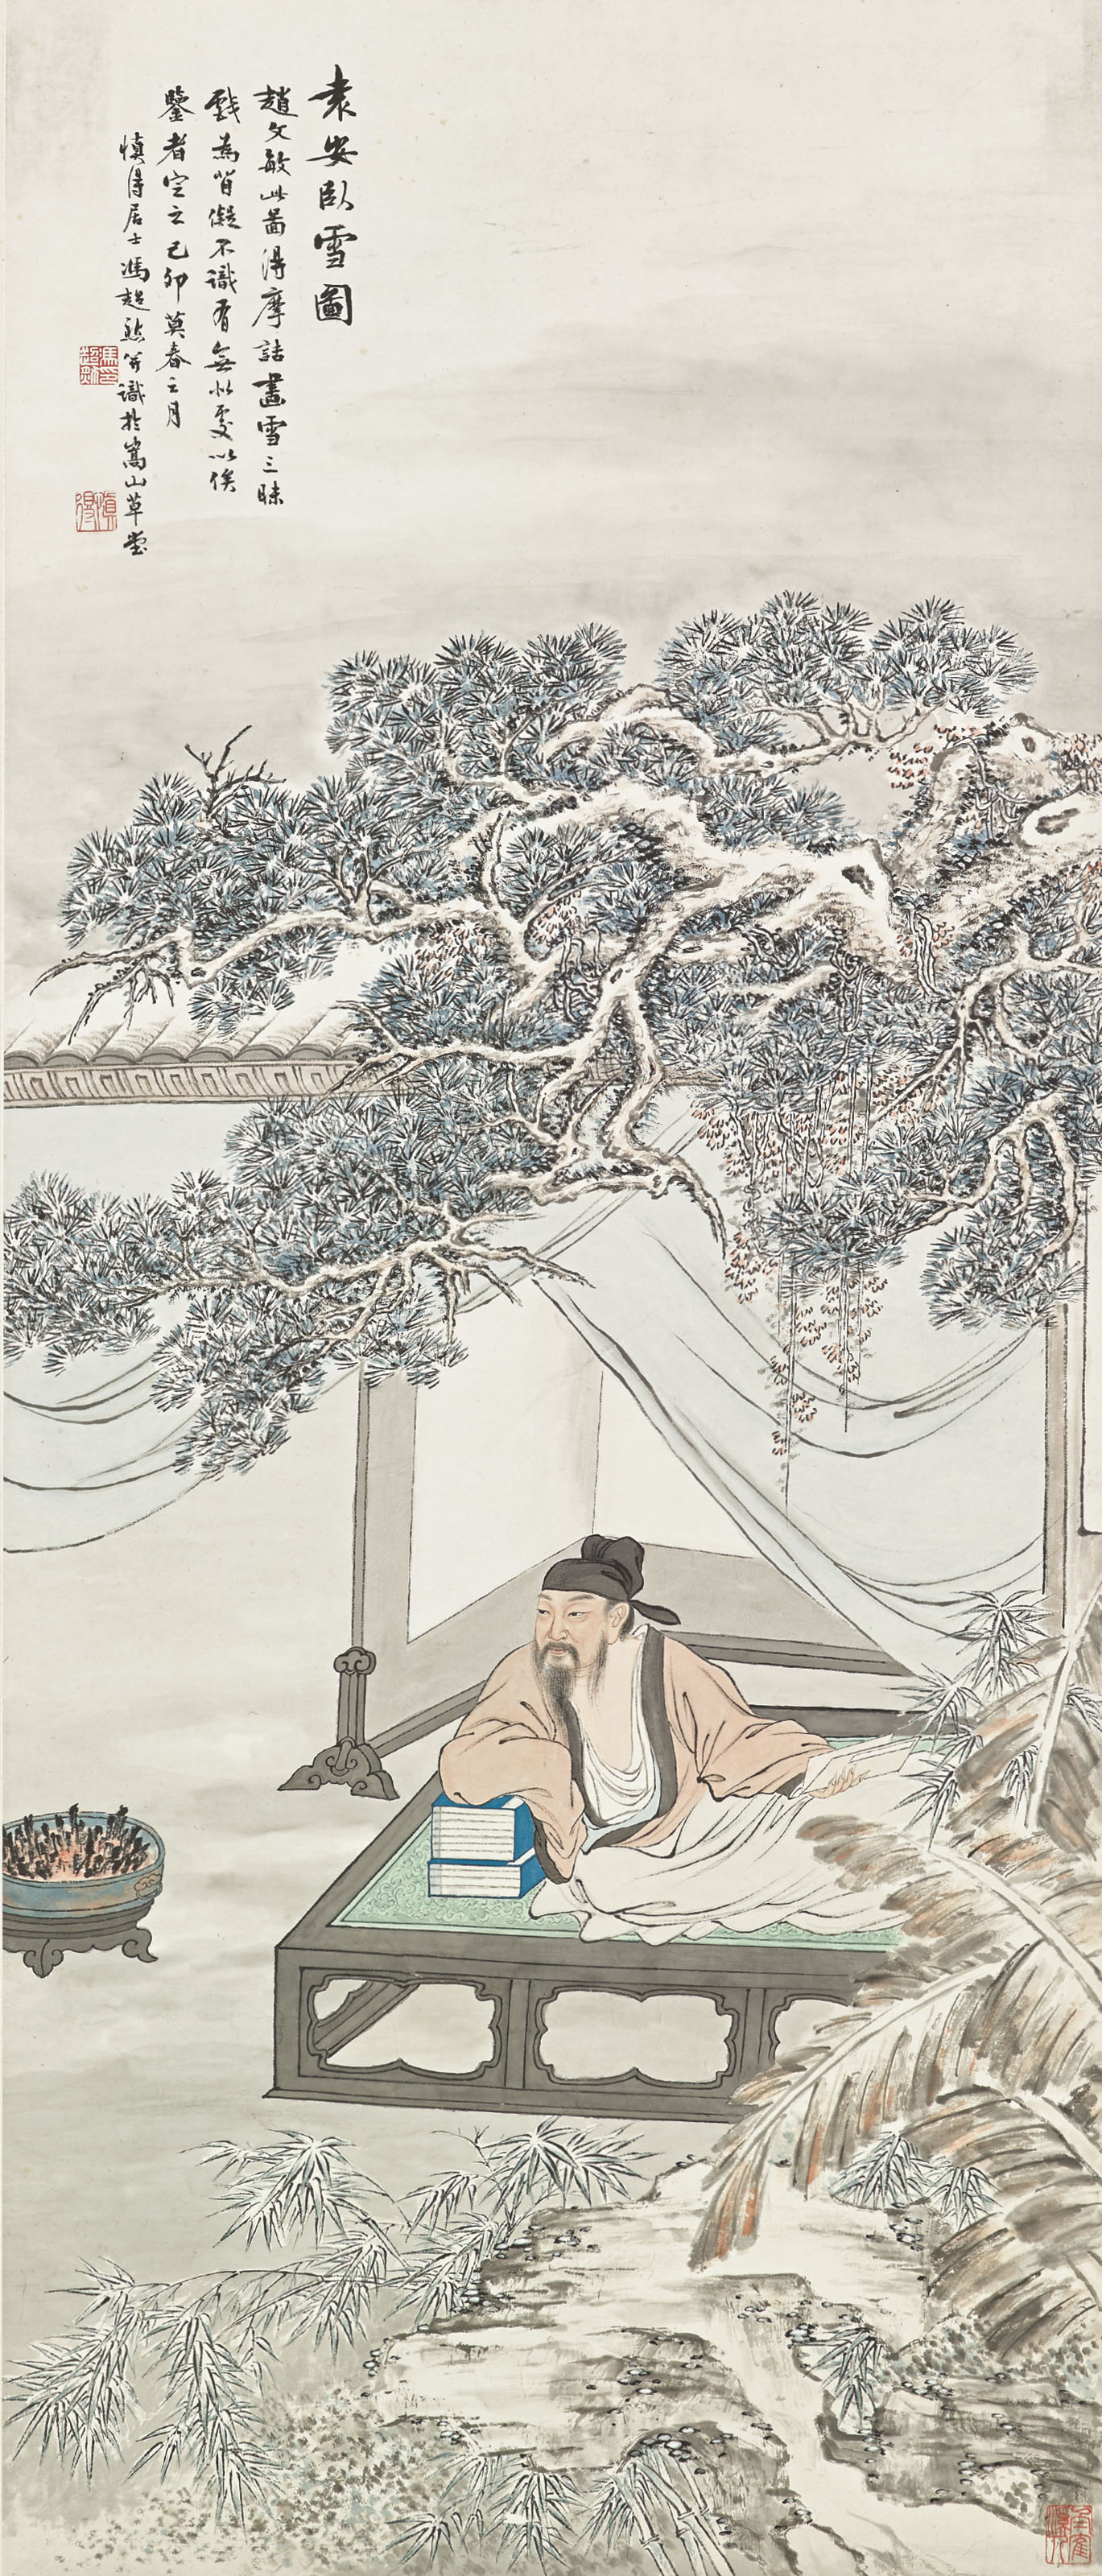 Yuan An in the Snow